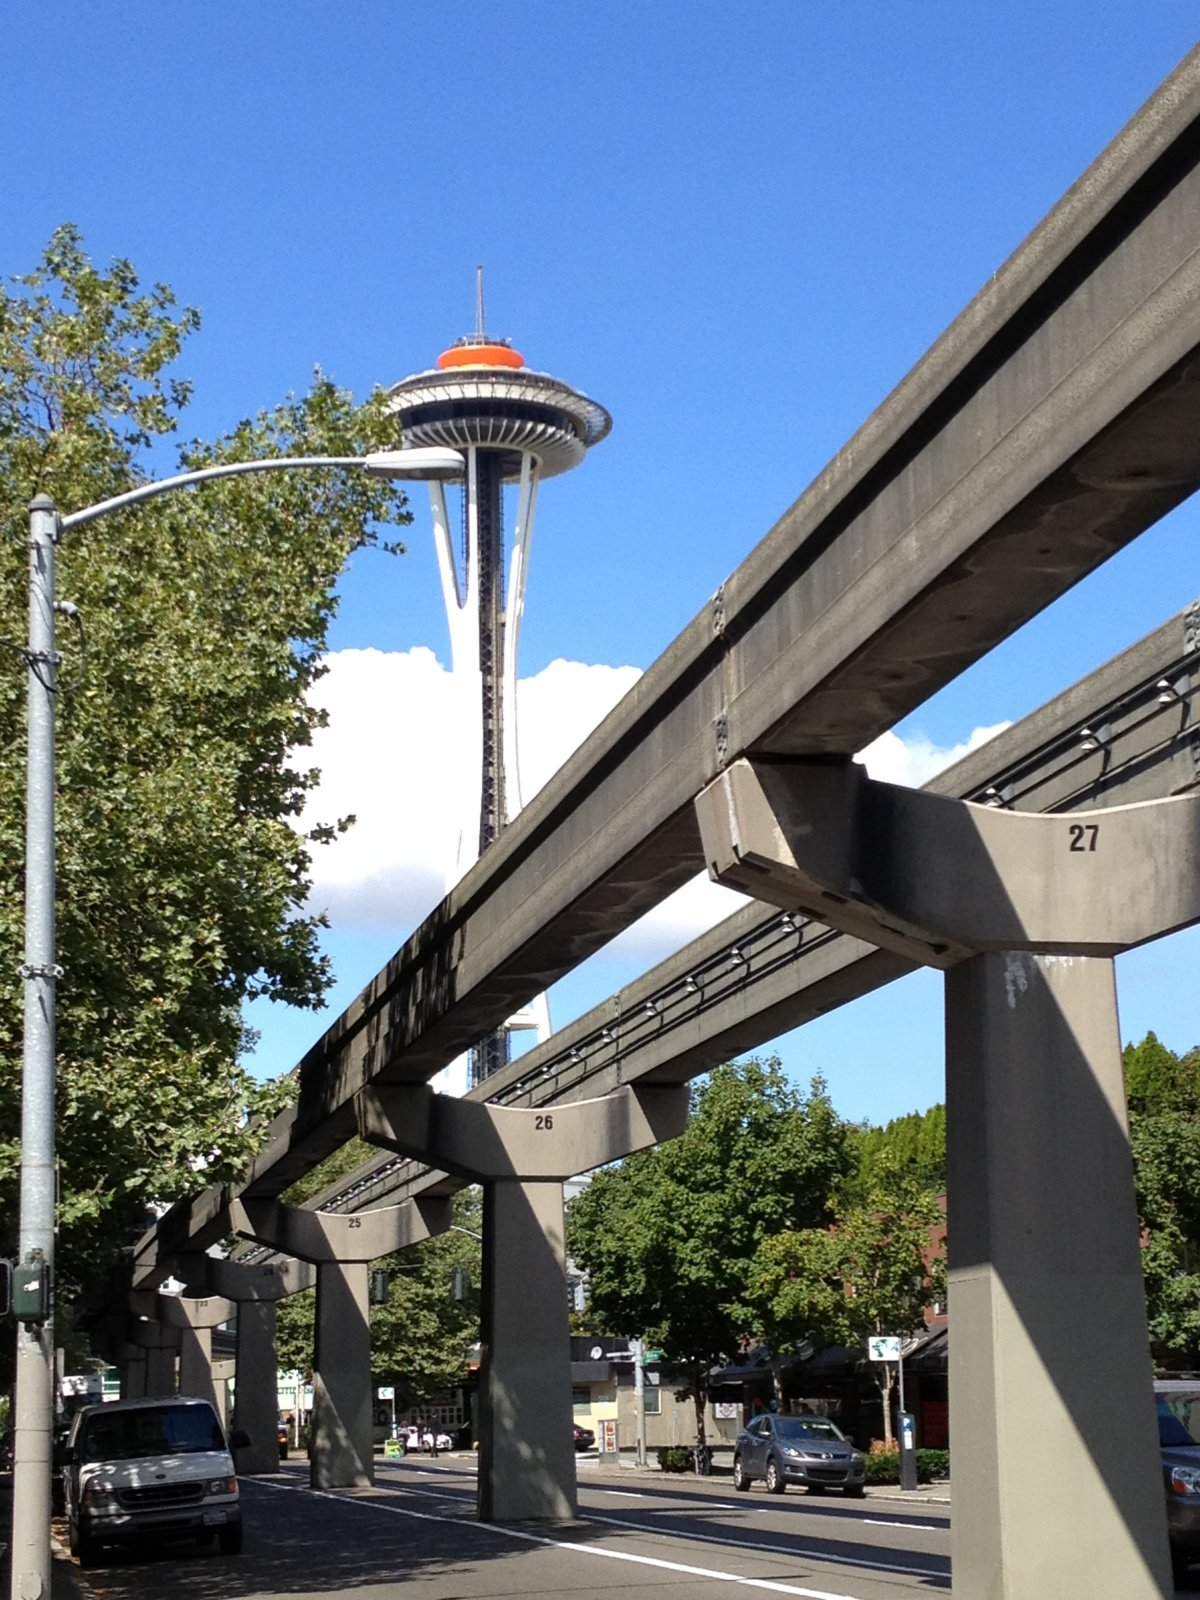 Click image for larger version  Name:Seattle 201.jpg Views:61 Size:371.9 KB ID:167146